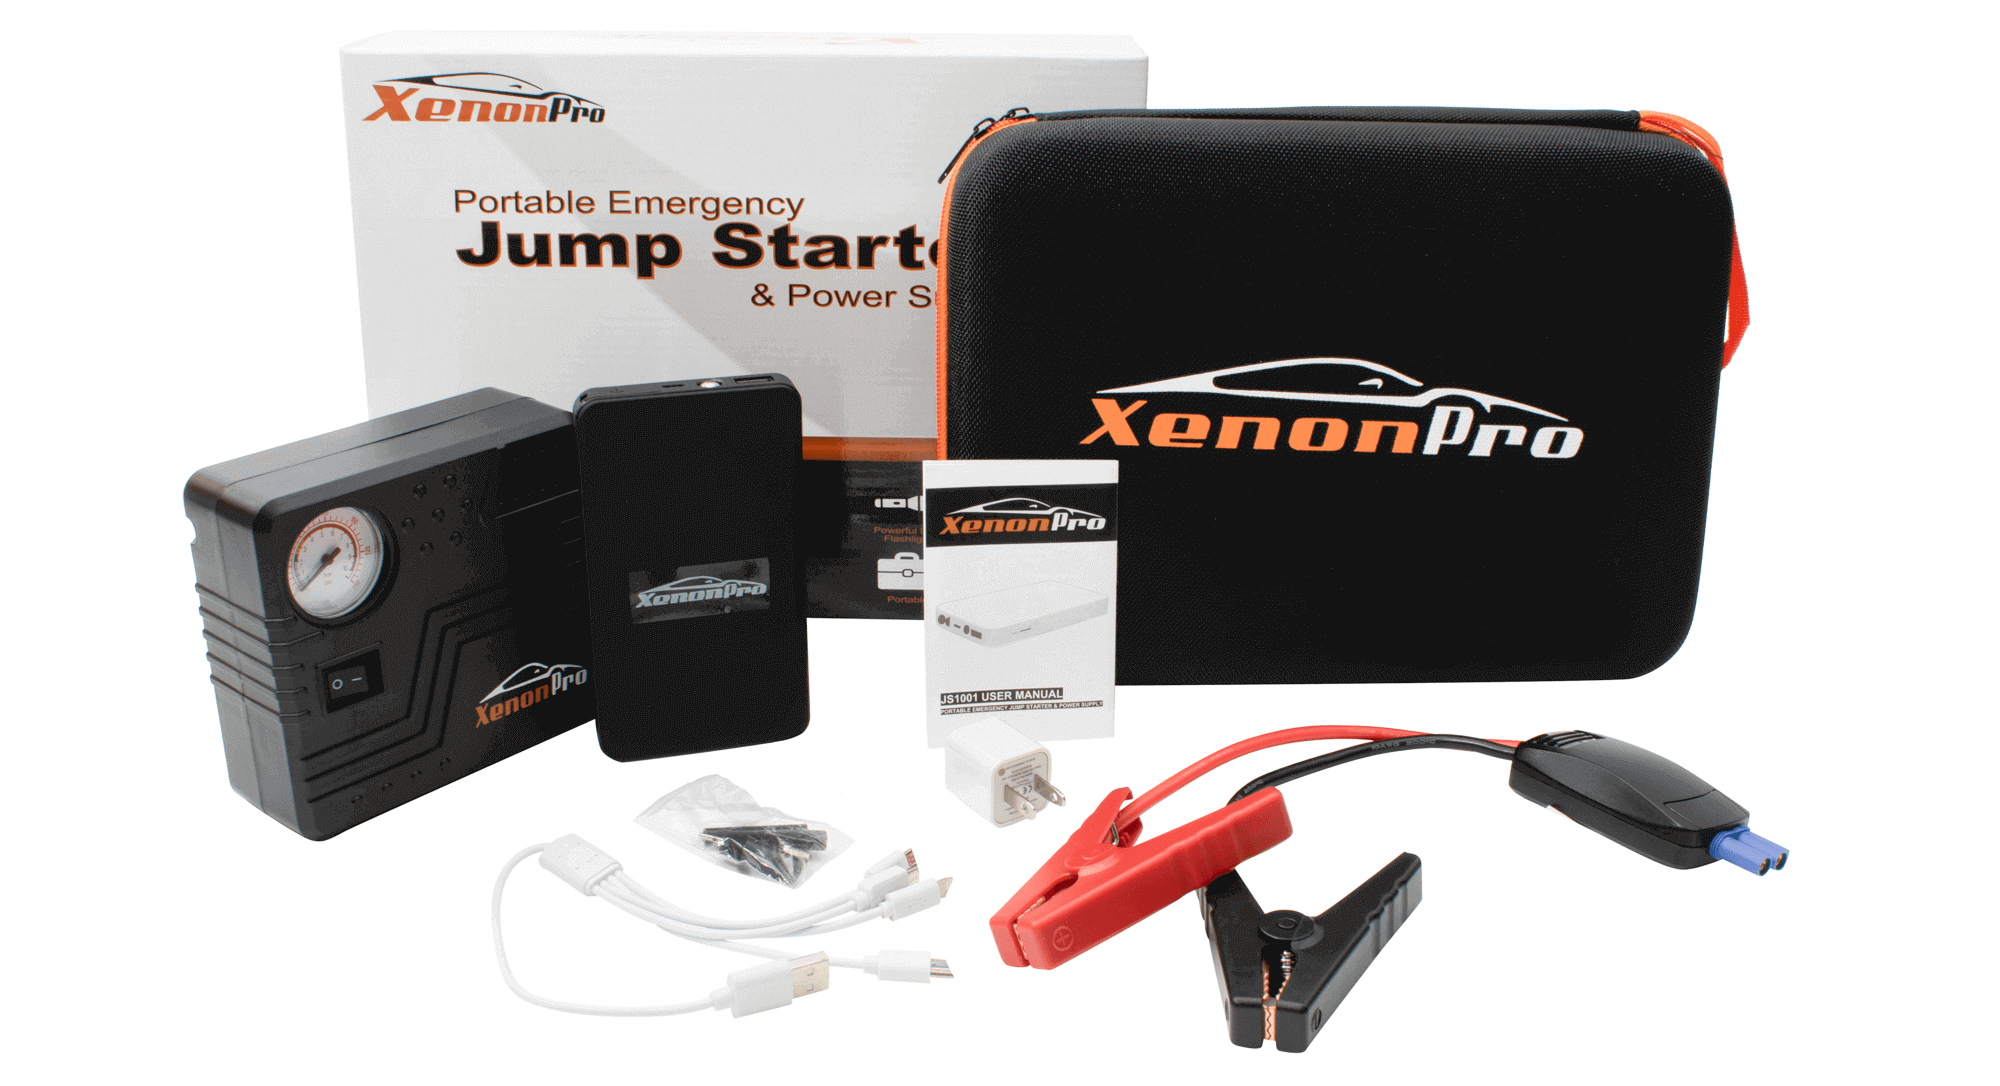 XenonPro.com - JS1001 What's Included